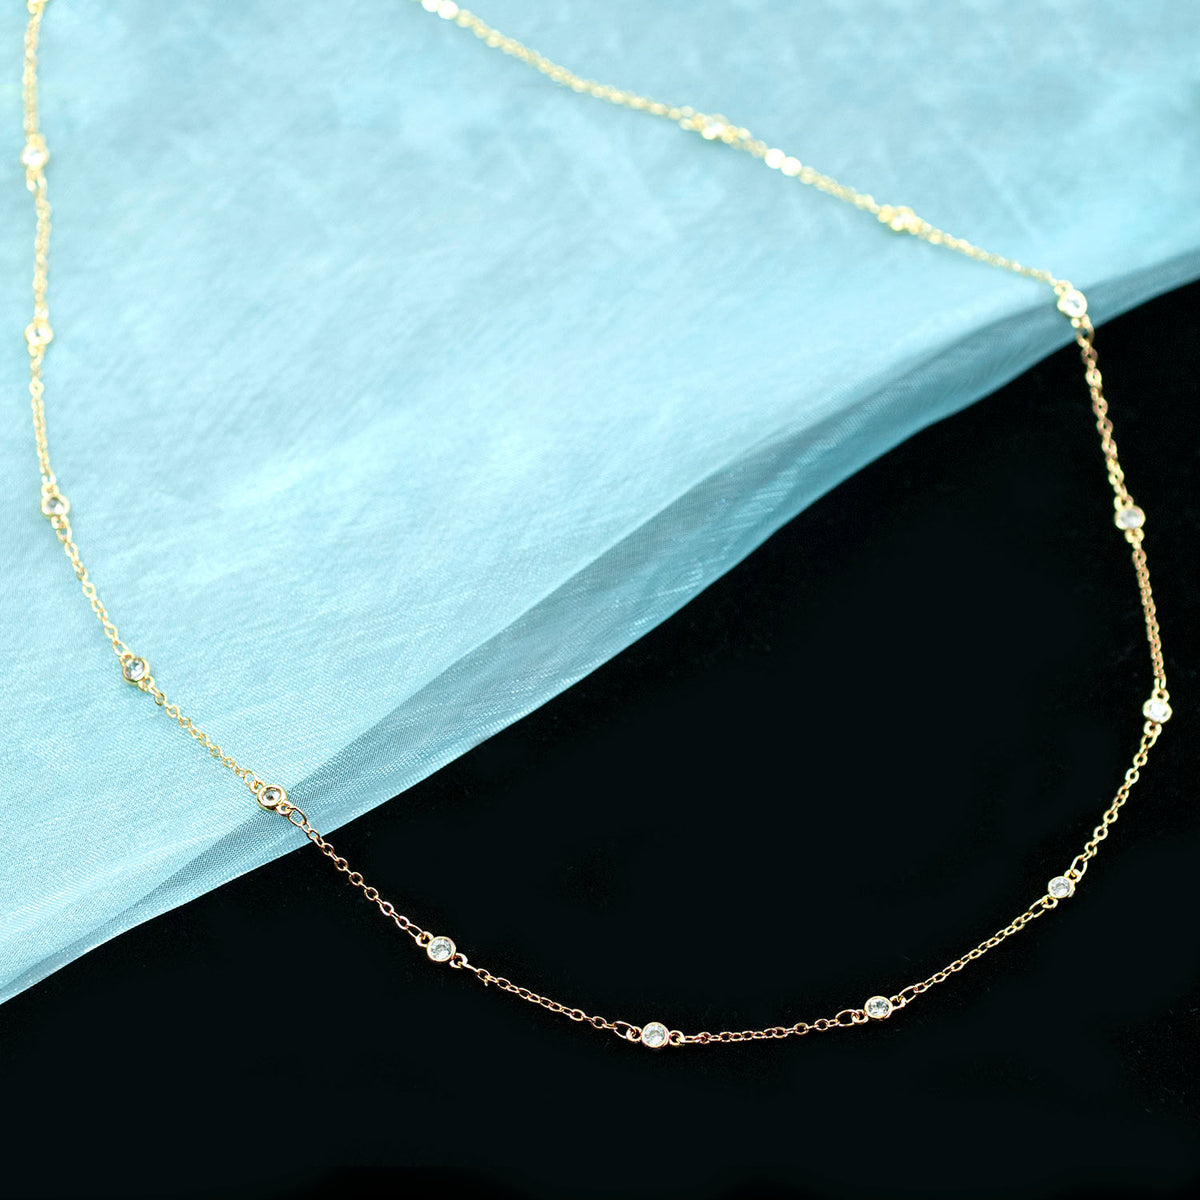 Crystal Chain Necklace N1710 - Sweet Romance Wholesale